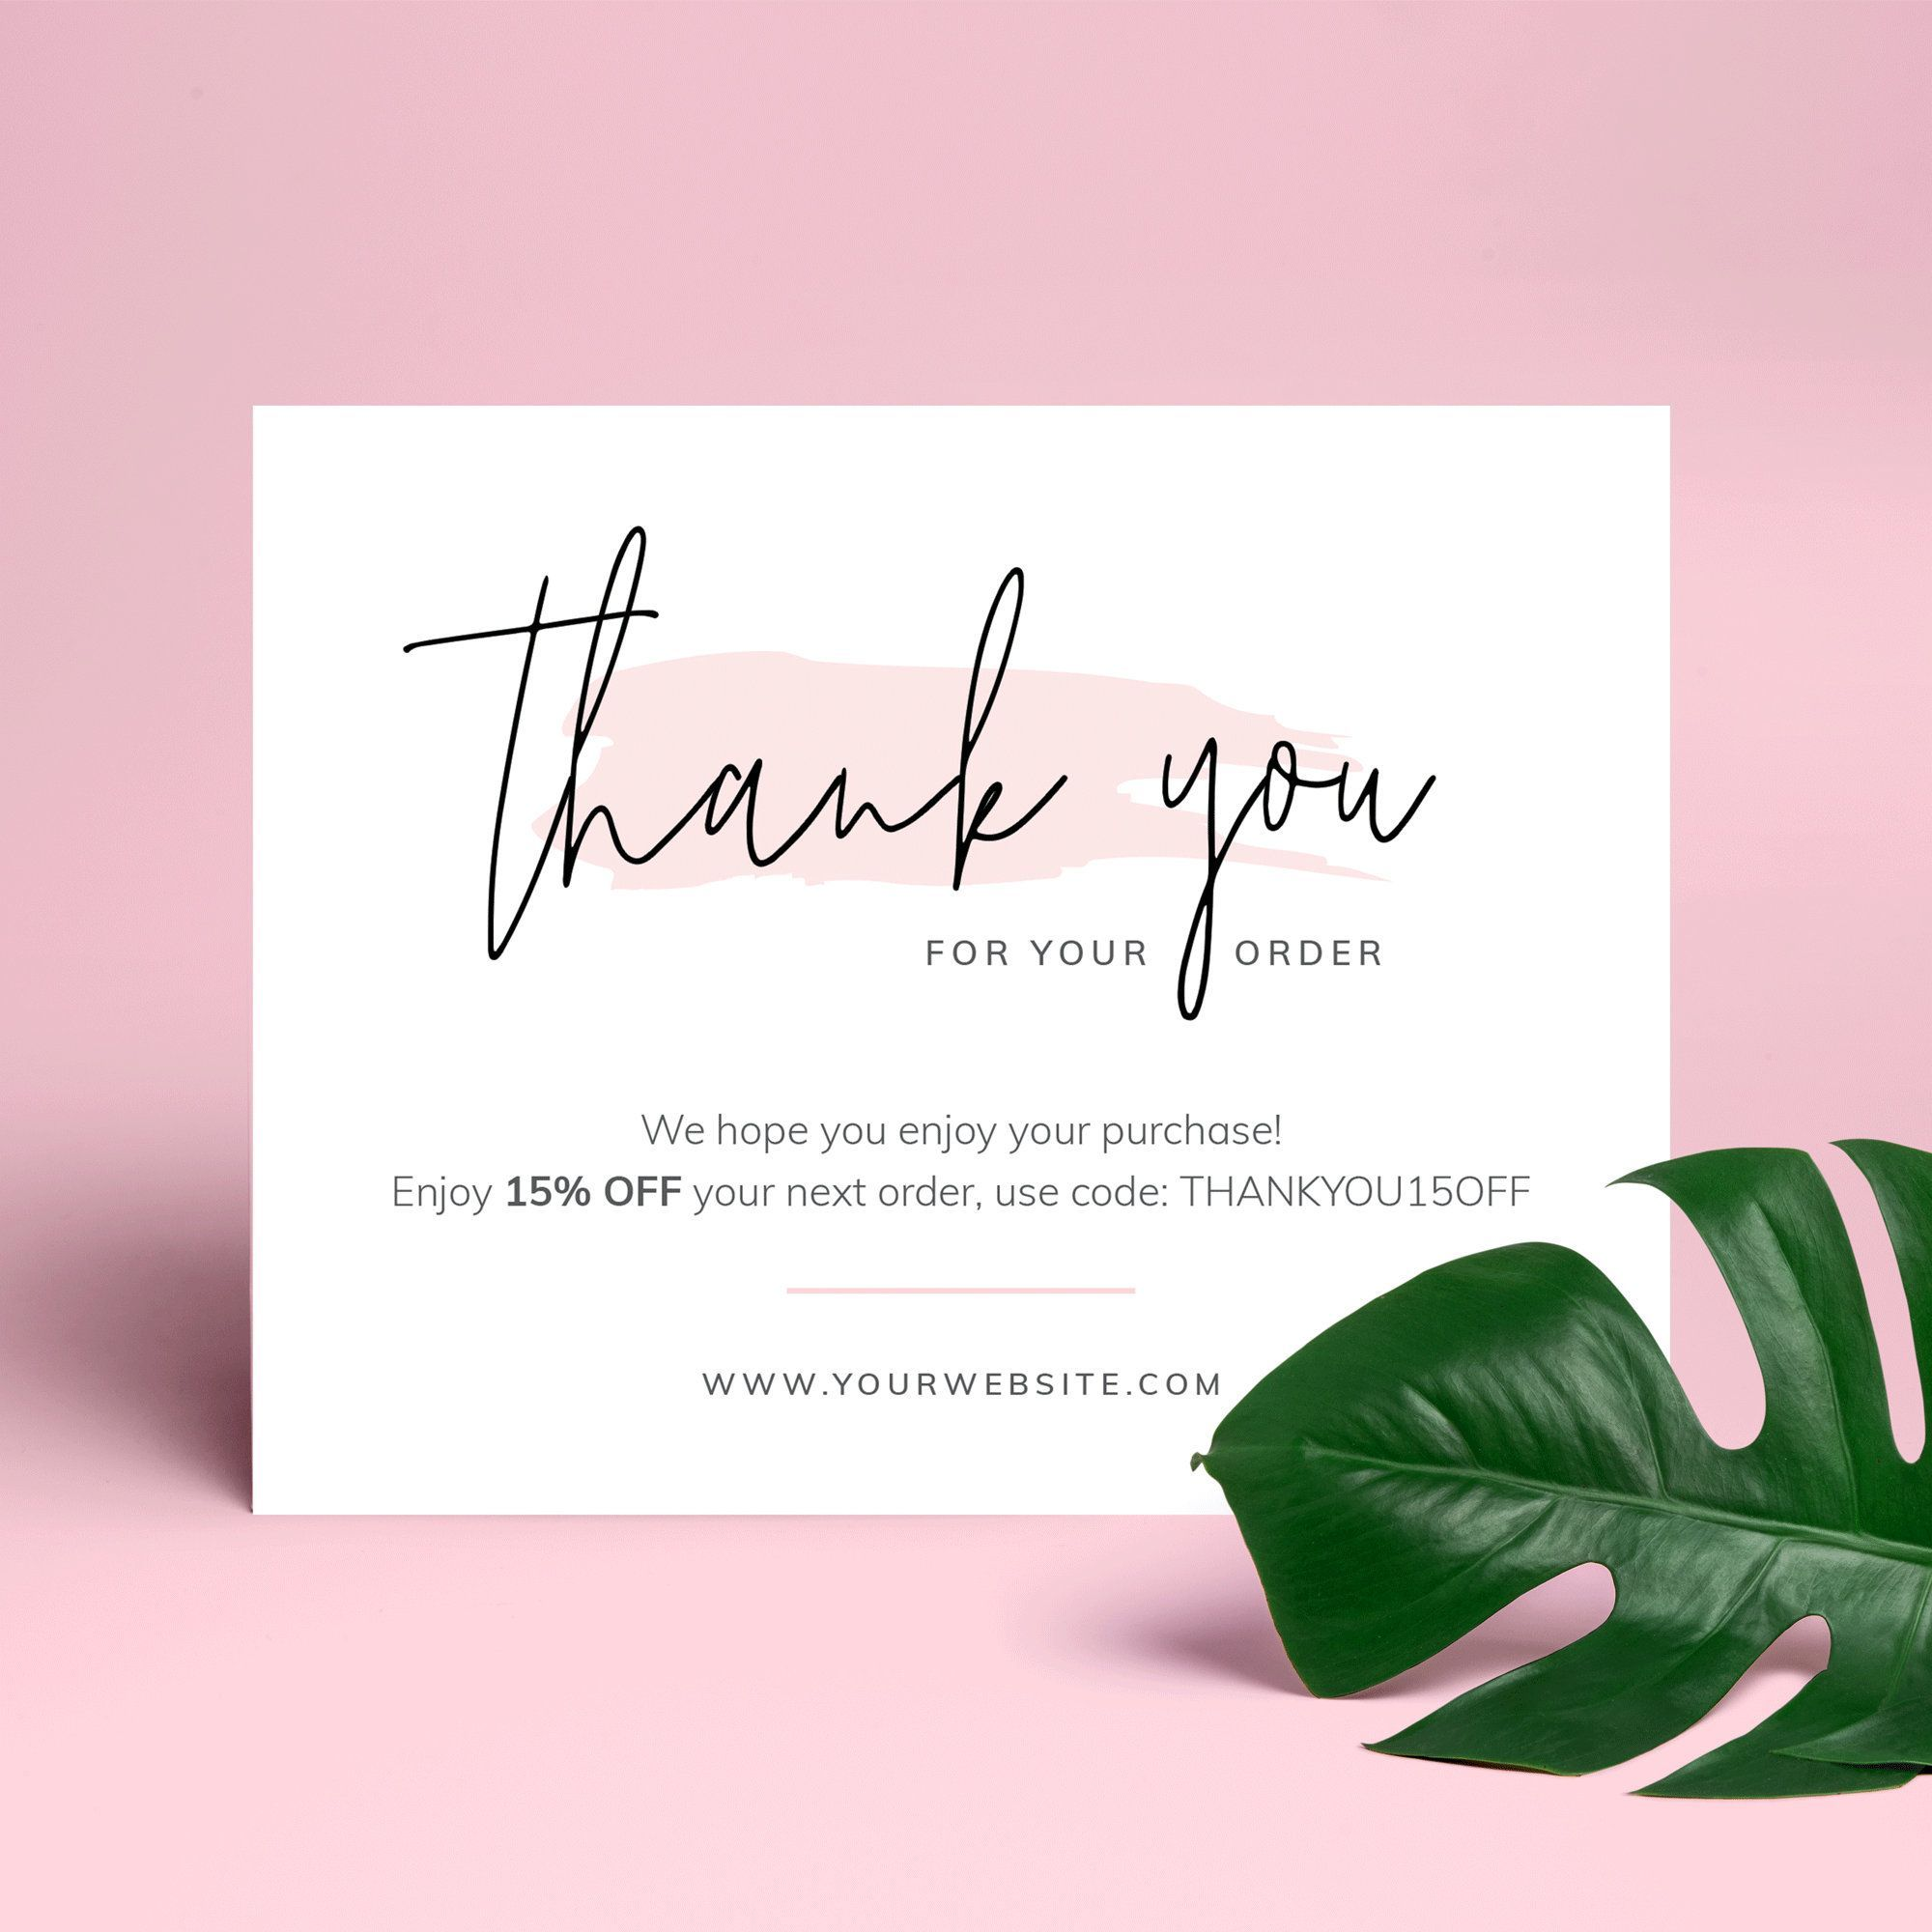 Business Danke Kartenvorlage Vielen Dank Fur Ihre Bestellung Paket Vielen Dank Dass Thank You Card Design Thank You Card Template Business Thank You Cards